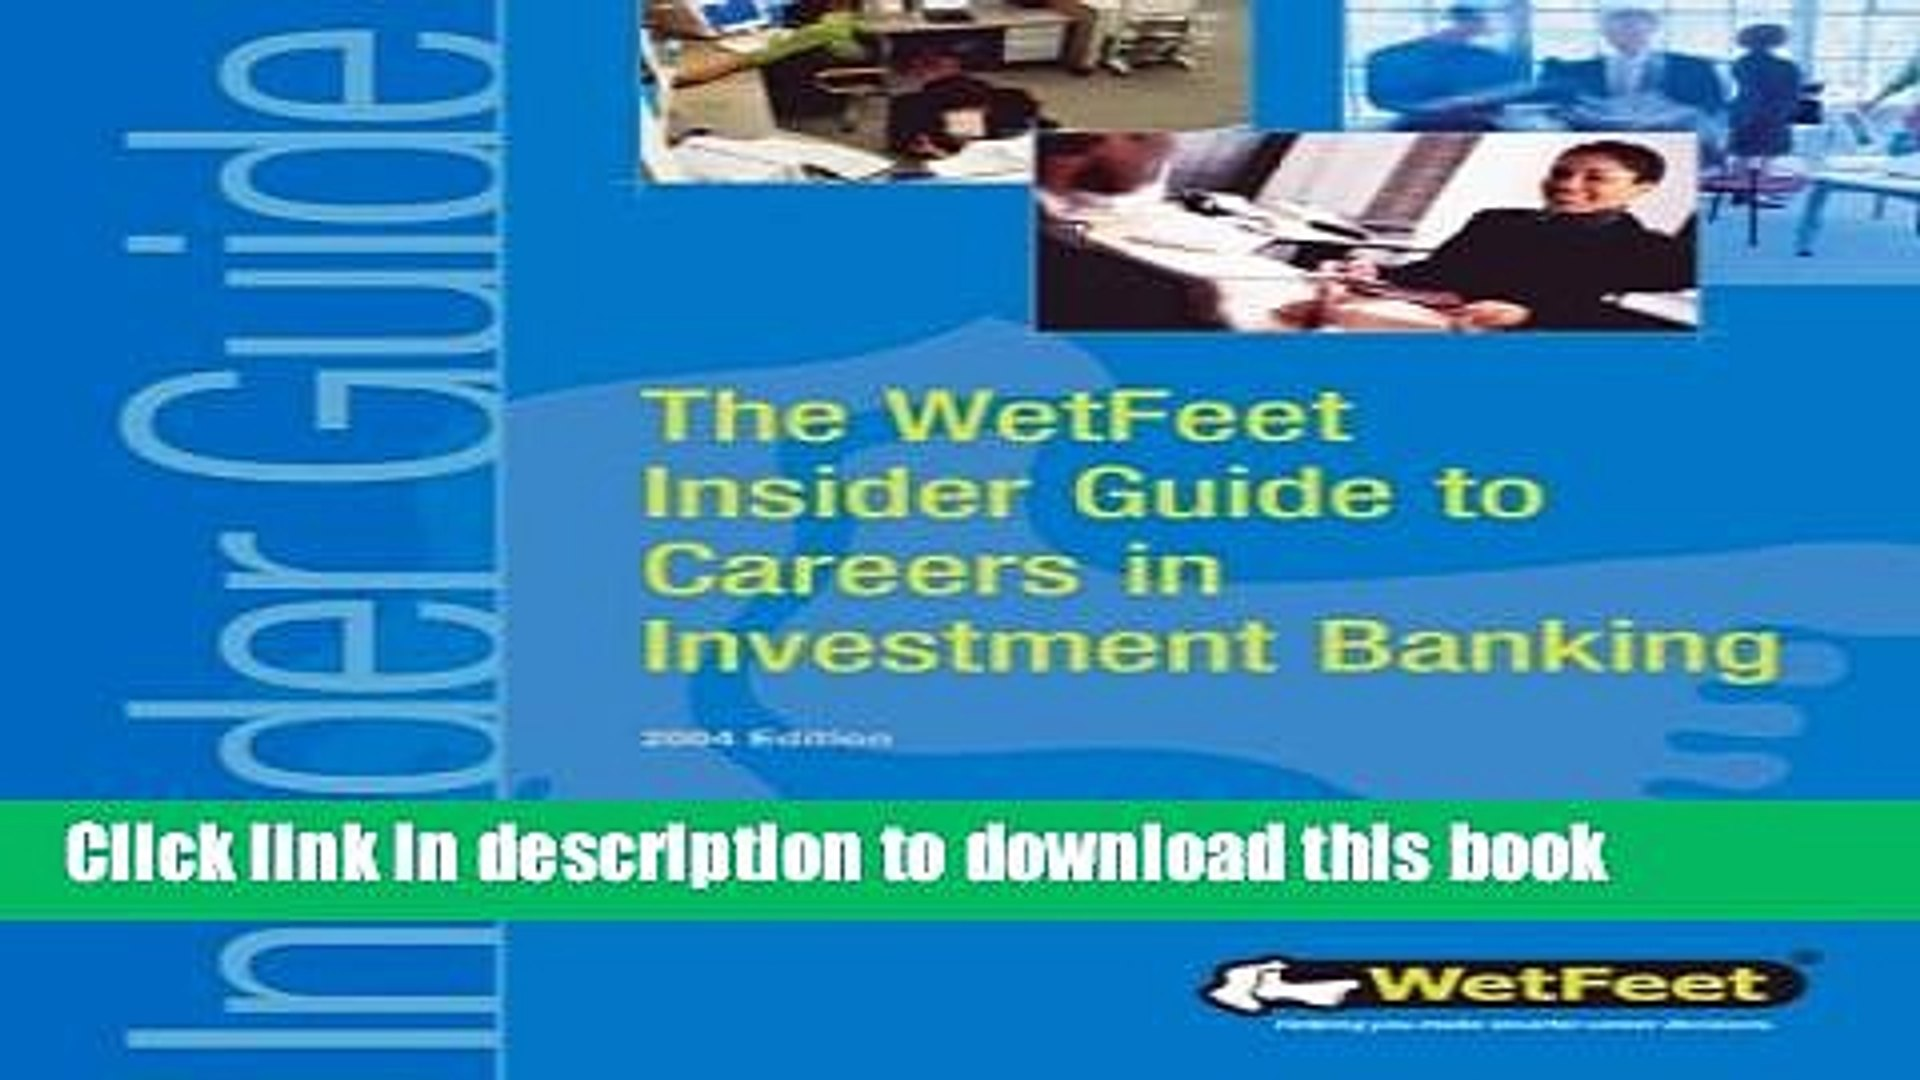 [Popular Books] The Wetfeet Insider Guide to Careers in Investment Banking: 2004 Edition Full Online